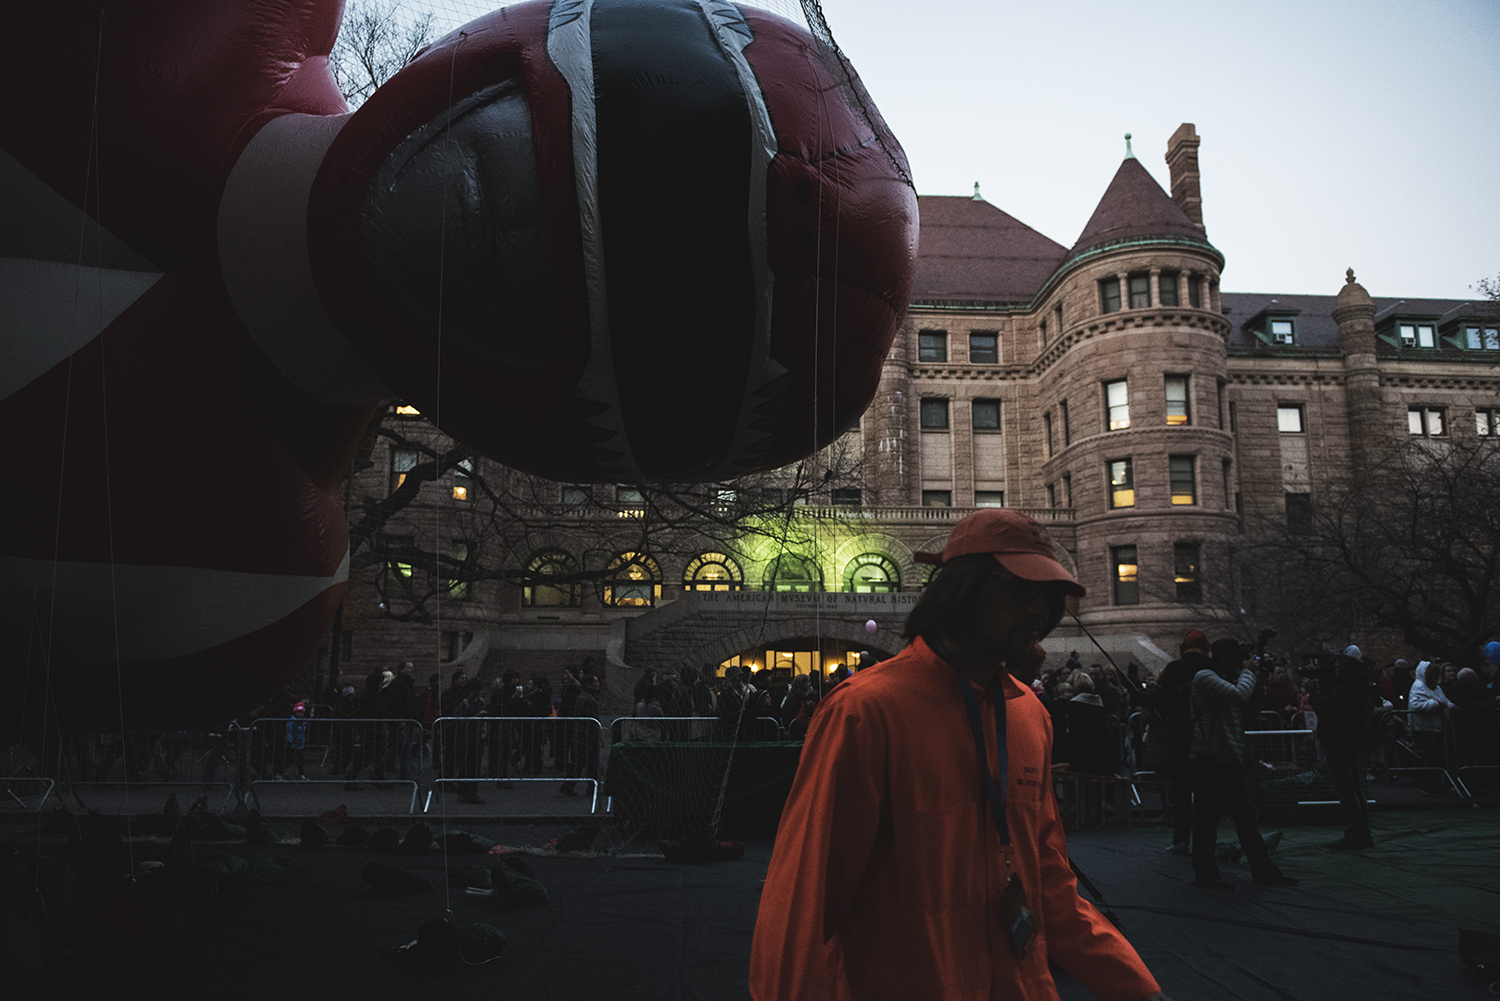 Macy's Balloon Inflation for Thanks Giving Day Parade took place on 77th St in Manhattan, NY.2015   ©    Go Nakamura     photography